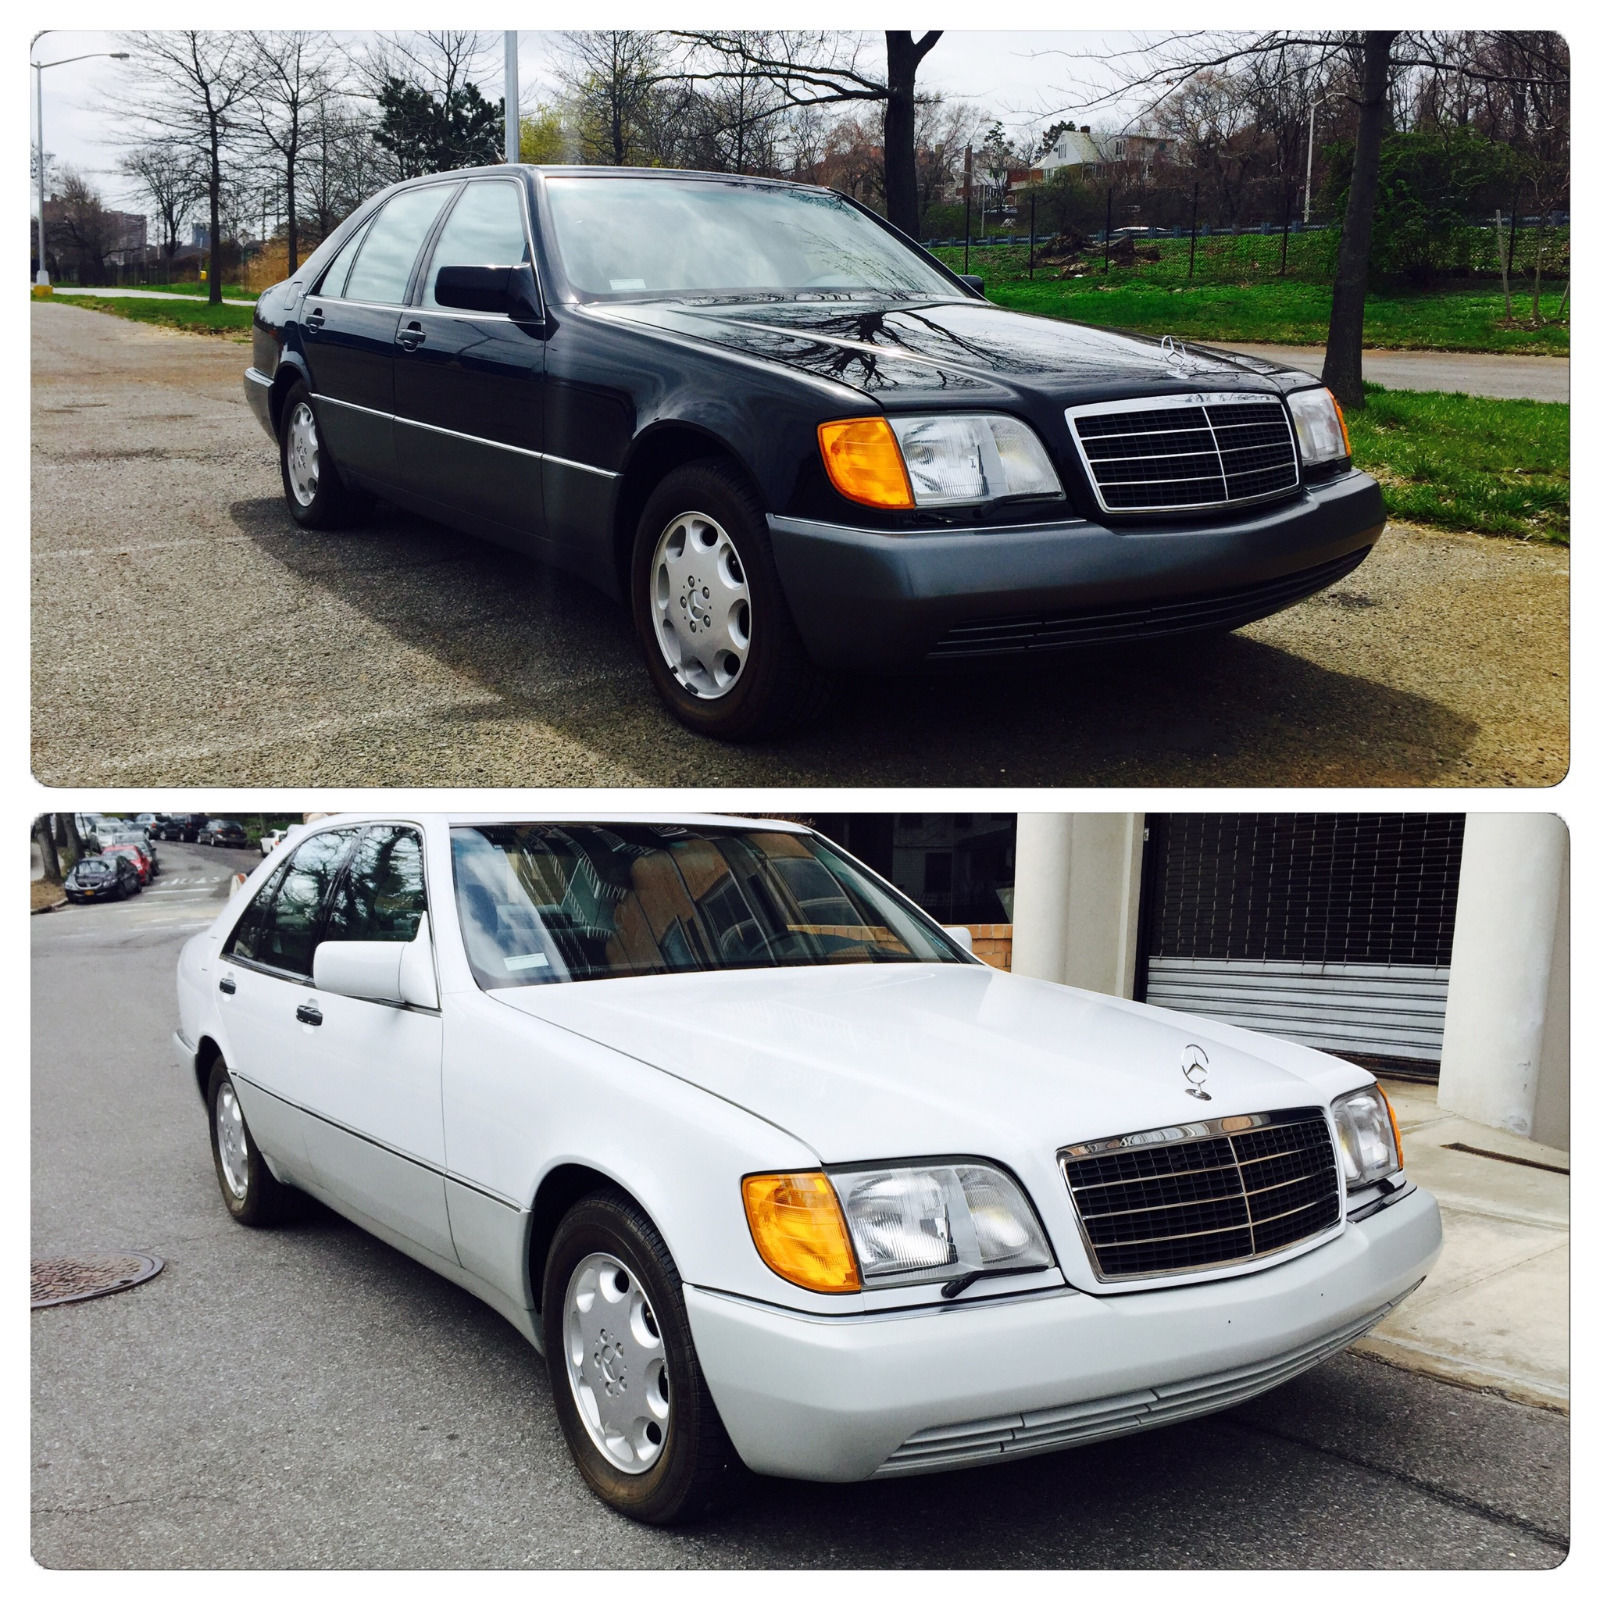 ebay find two mercedes benz w140 s class with delivery mileage pop up for sale autoevolution. Black Bedroom Furniture Sets. Home Design Ideas